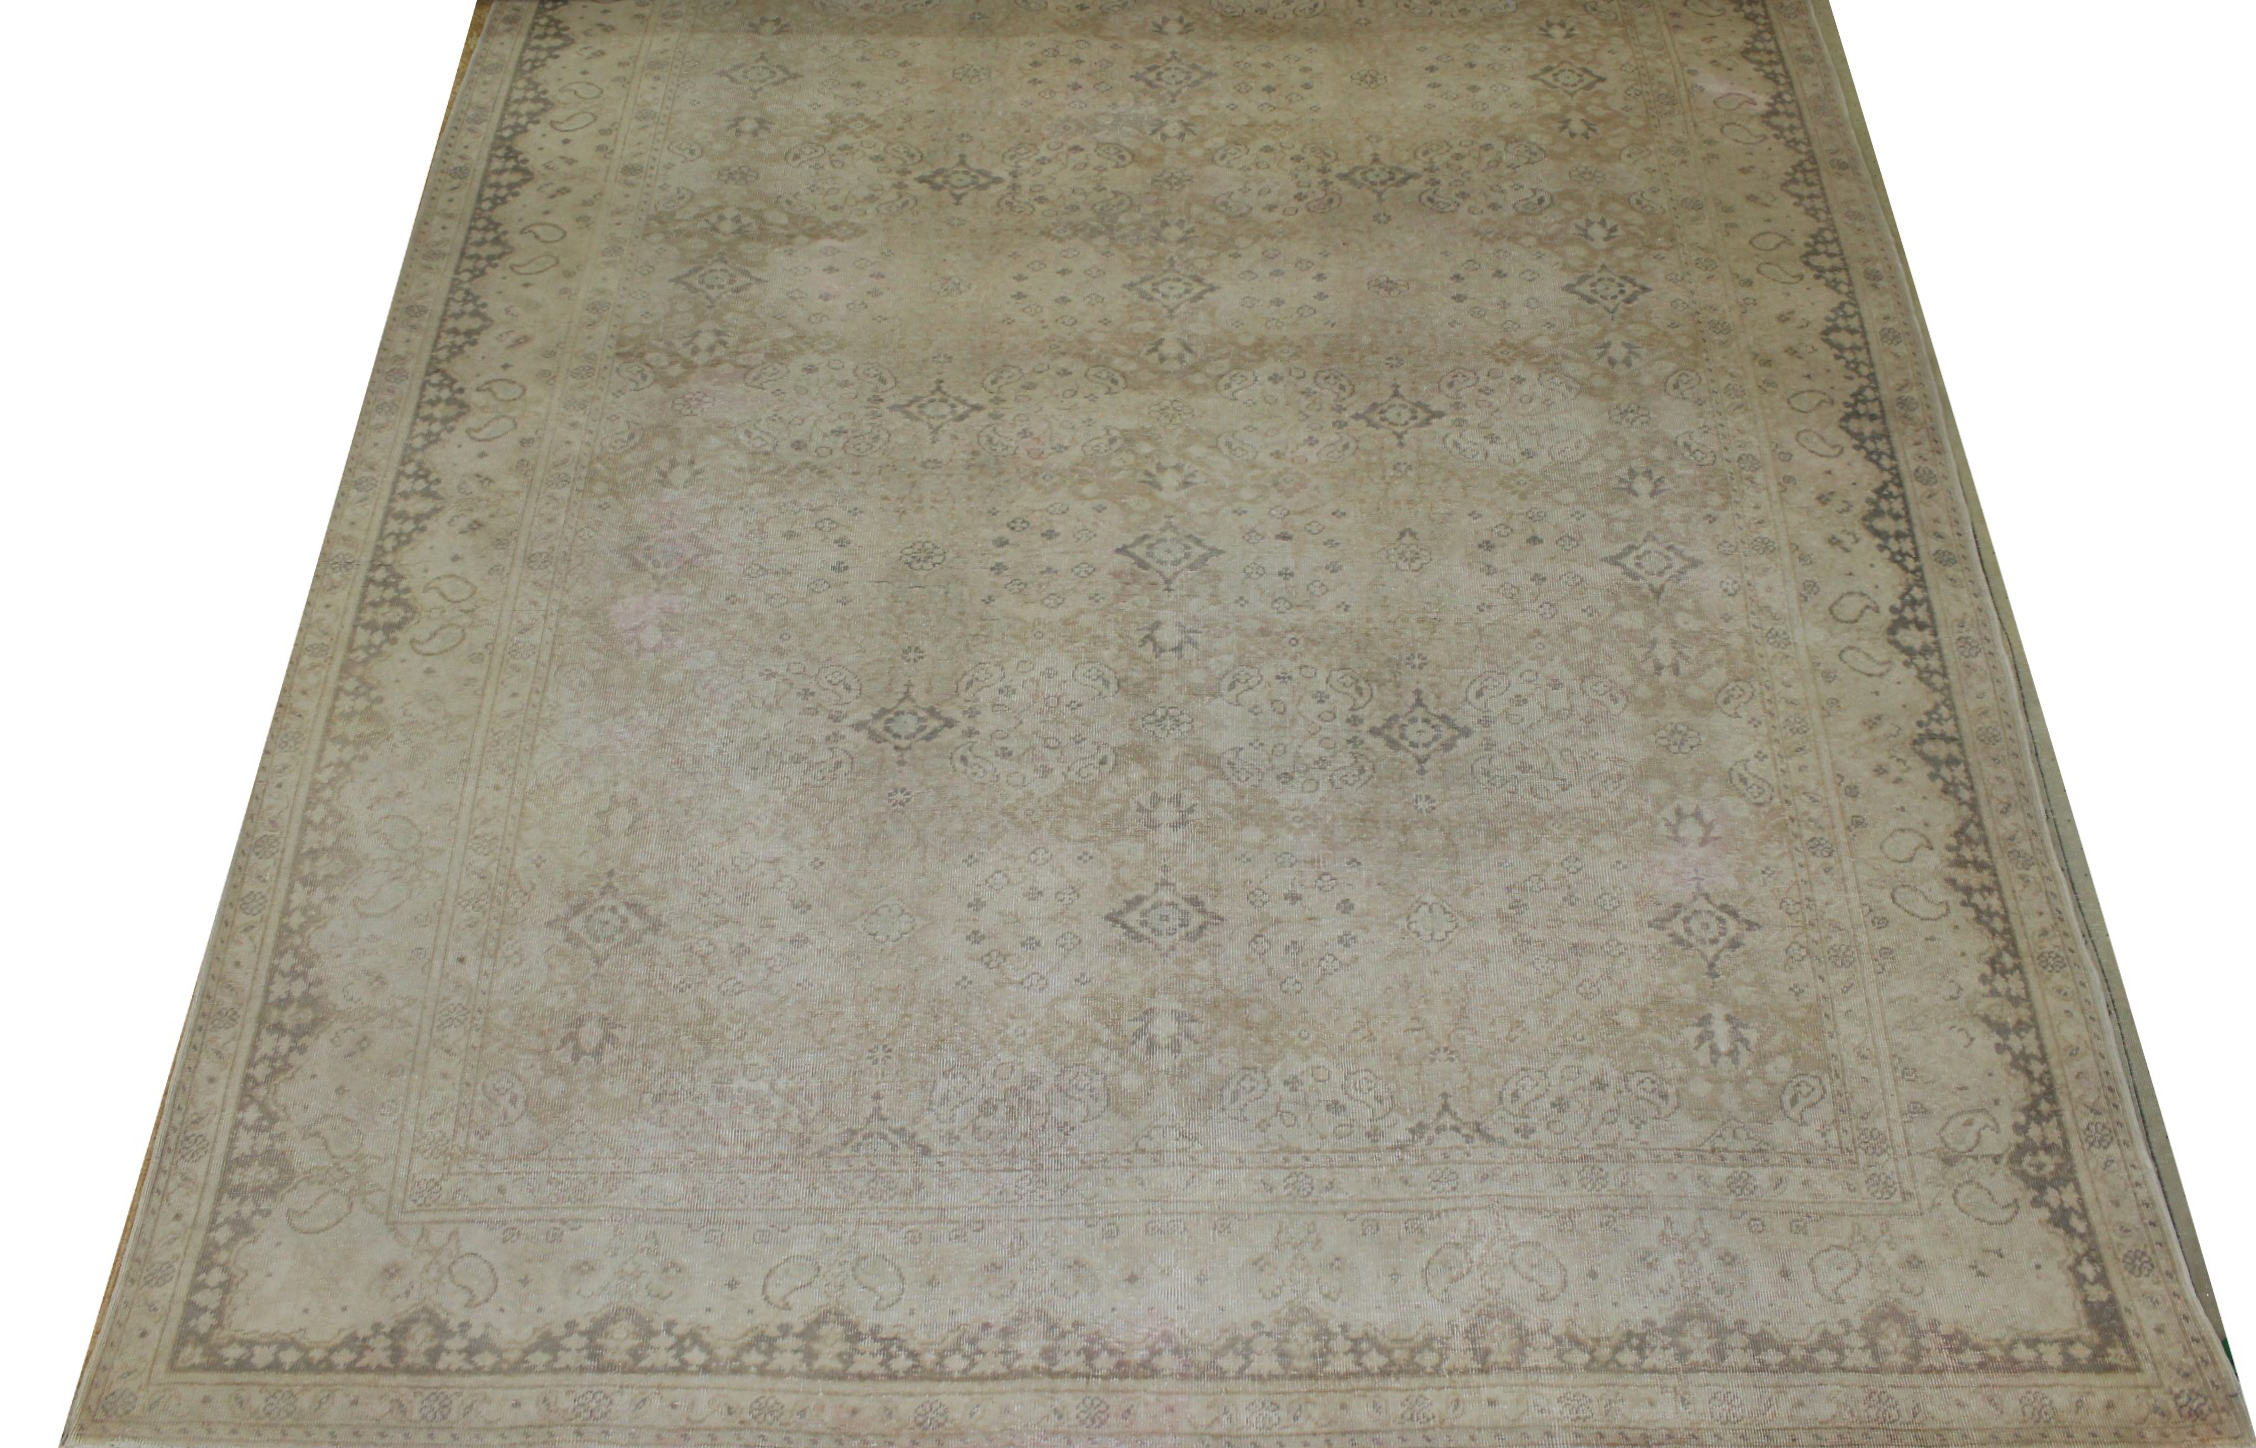 8x10 Oushak Hand Knotted Wool Area Rug - MR16815